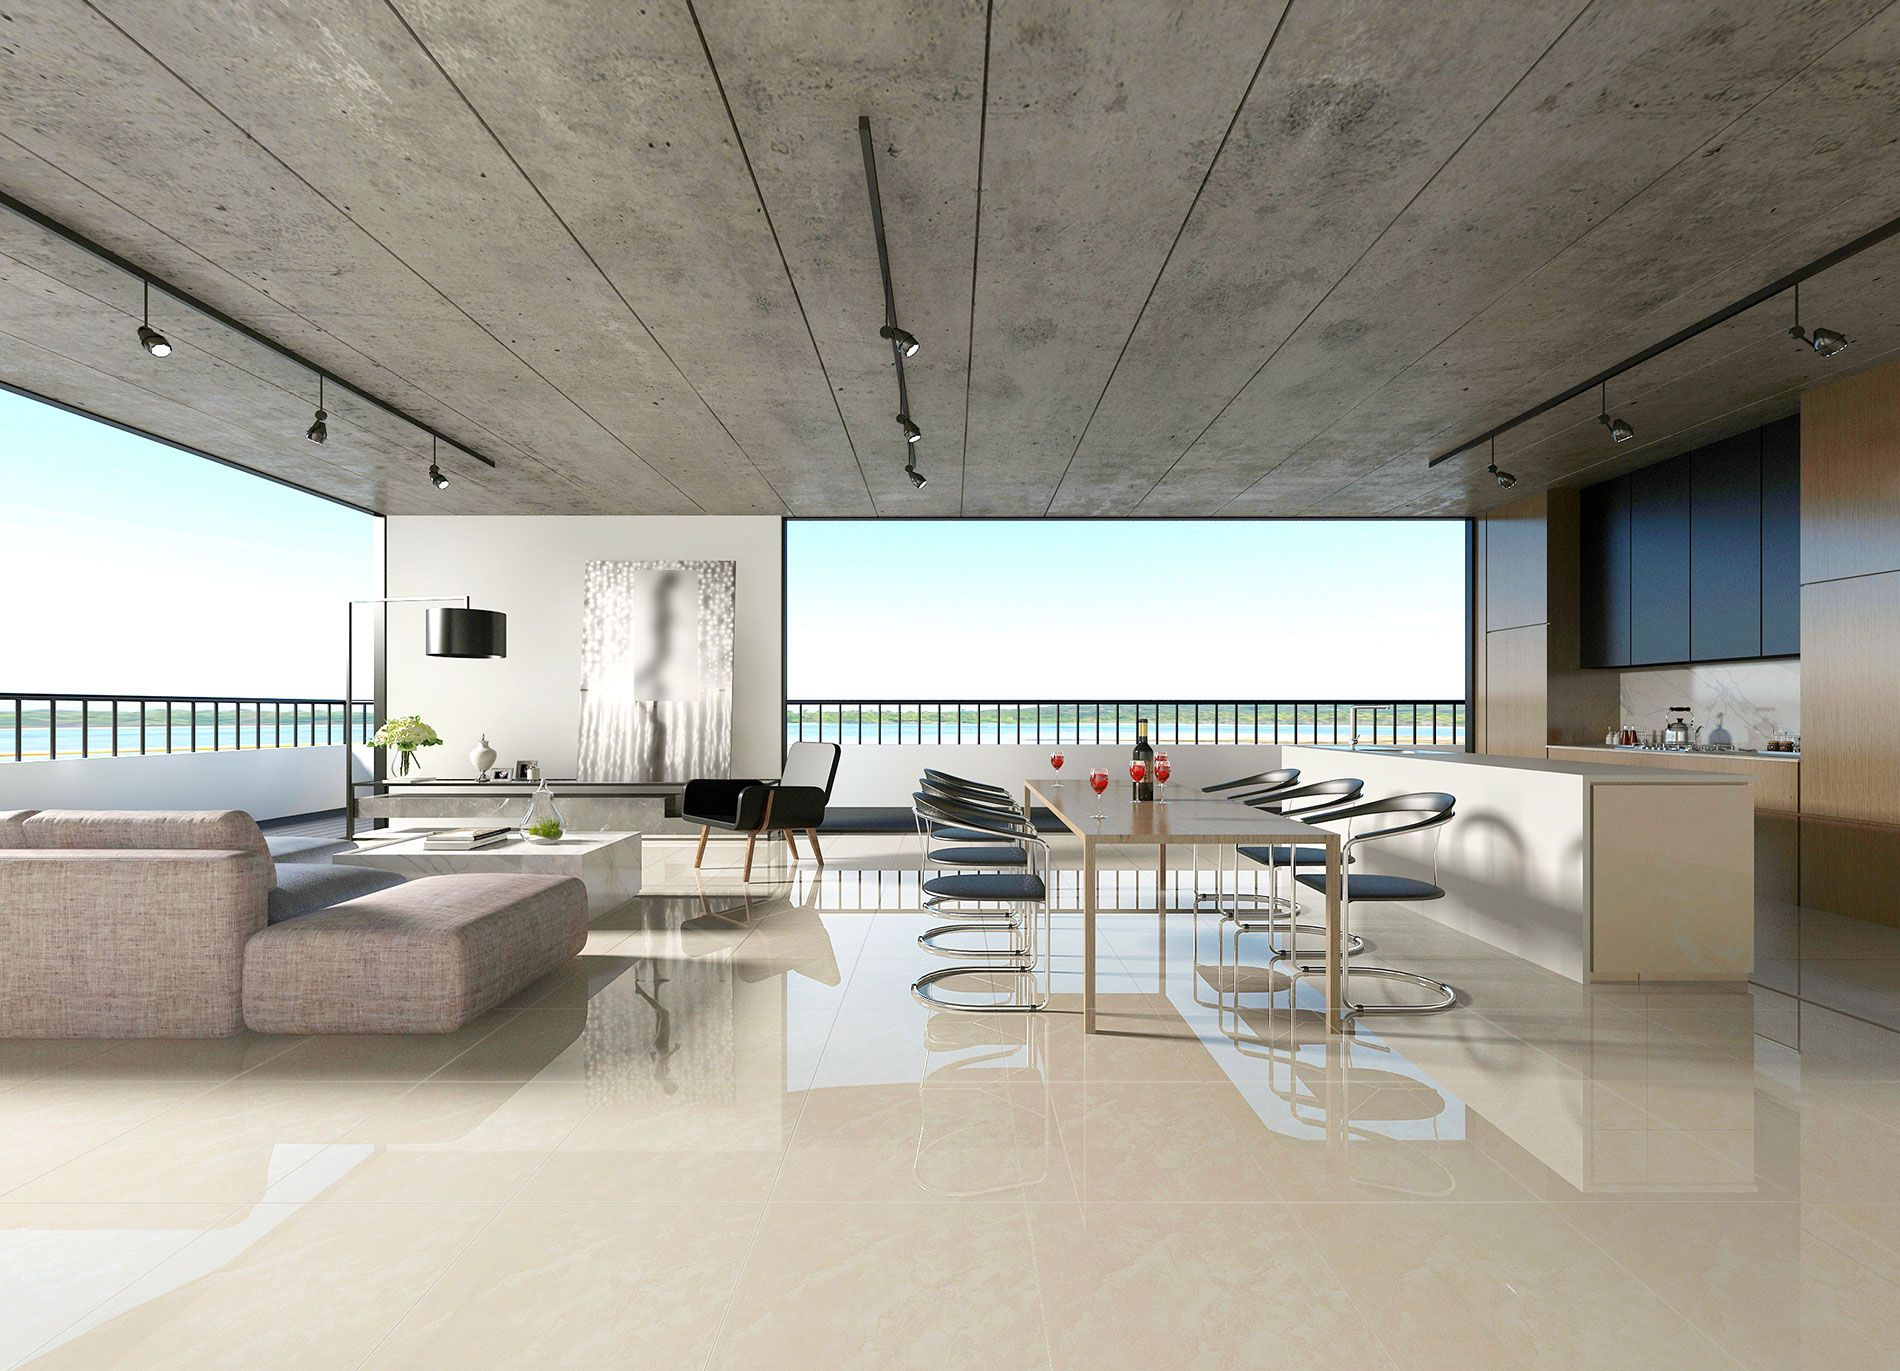 Beige watermark nano pre sealed polished porcelain floor tiles buy watermark porcelain tiles and save buy beige watermark nano pre sealed polished porcelain floor tile at sydneys lowest price at tfo dailygadgetfo Gallery